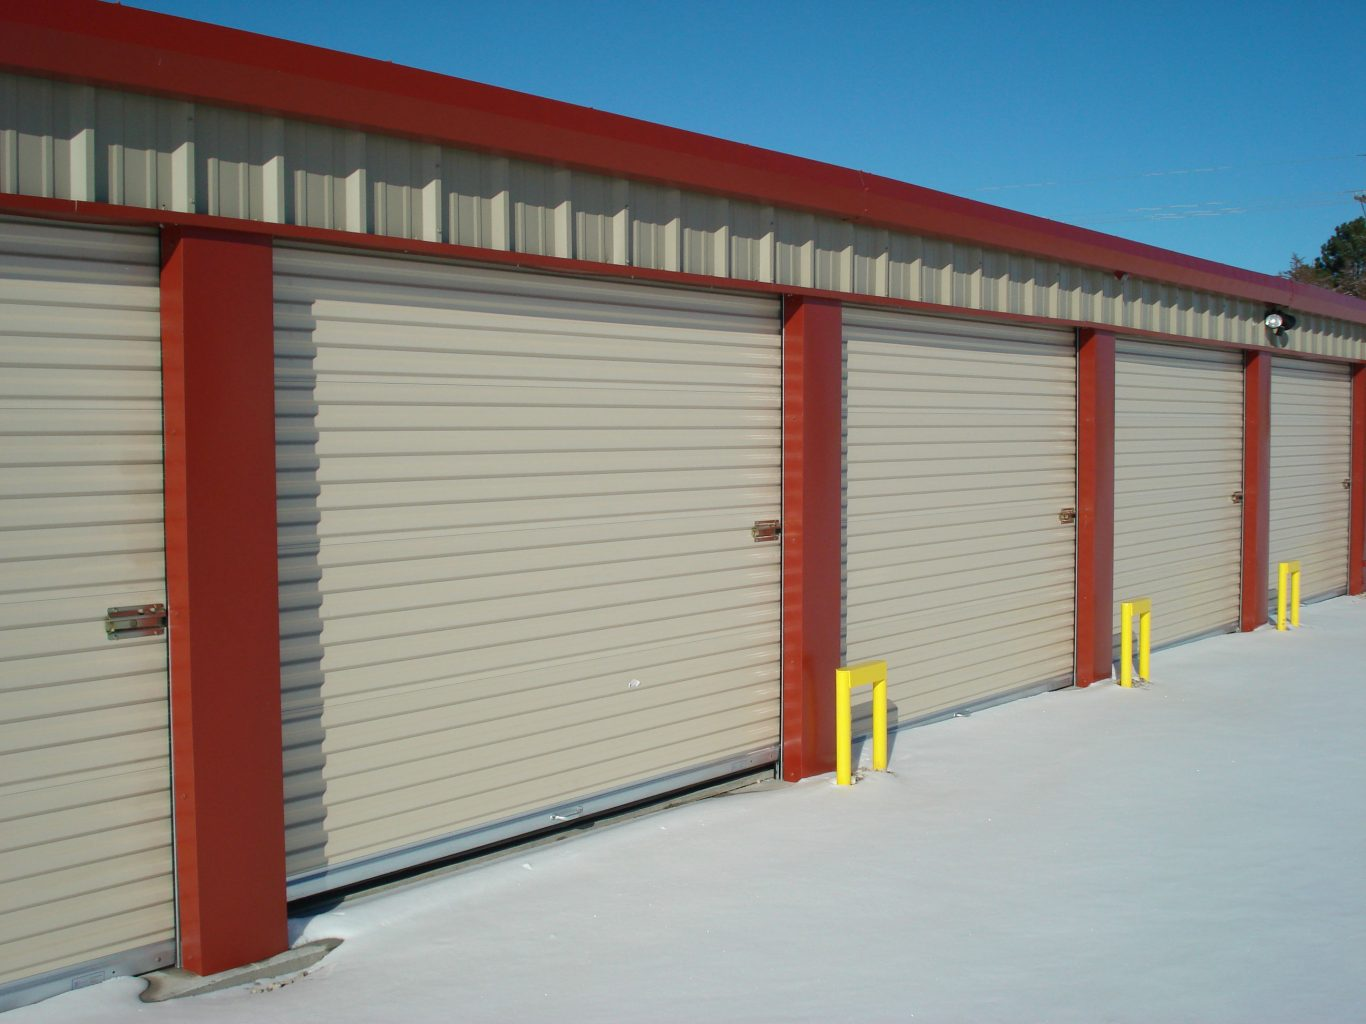 cheap metal storage building kits do it yourself